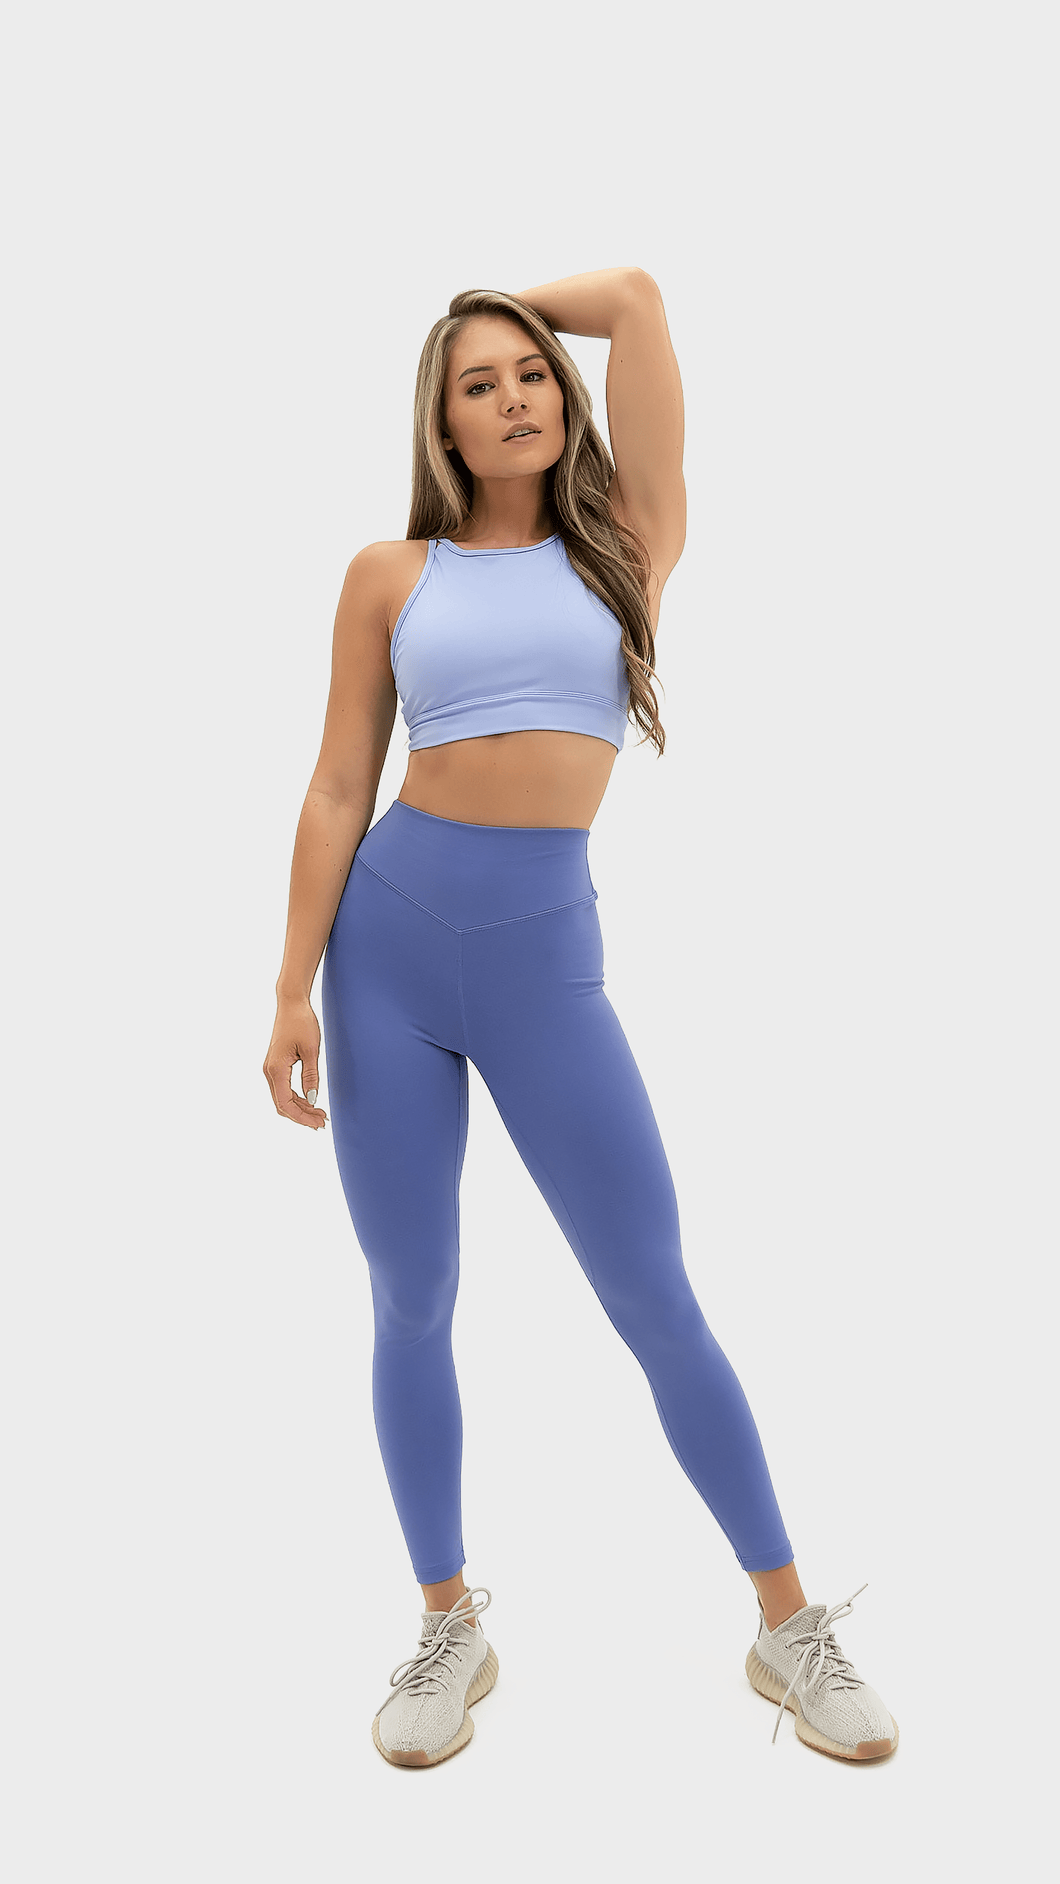 Balance Athletica Bottoms The Ascend Pant - Bliss